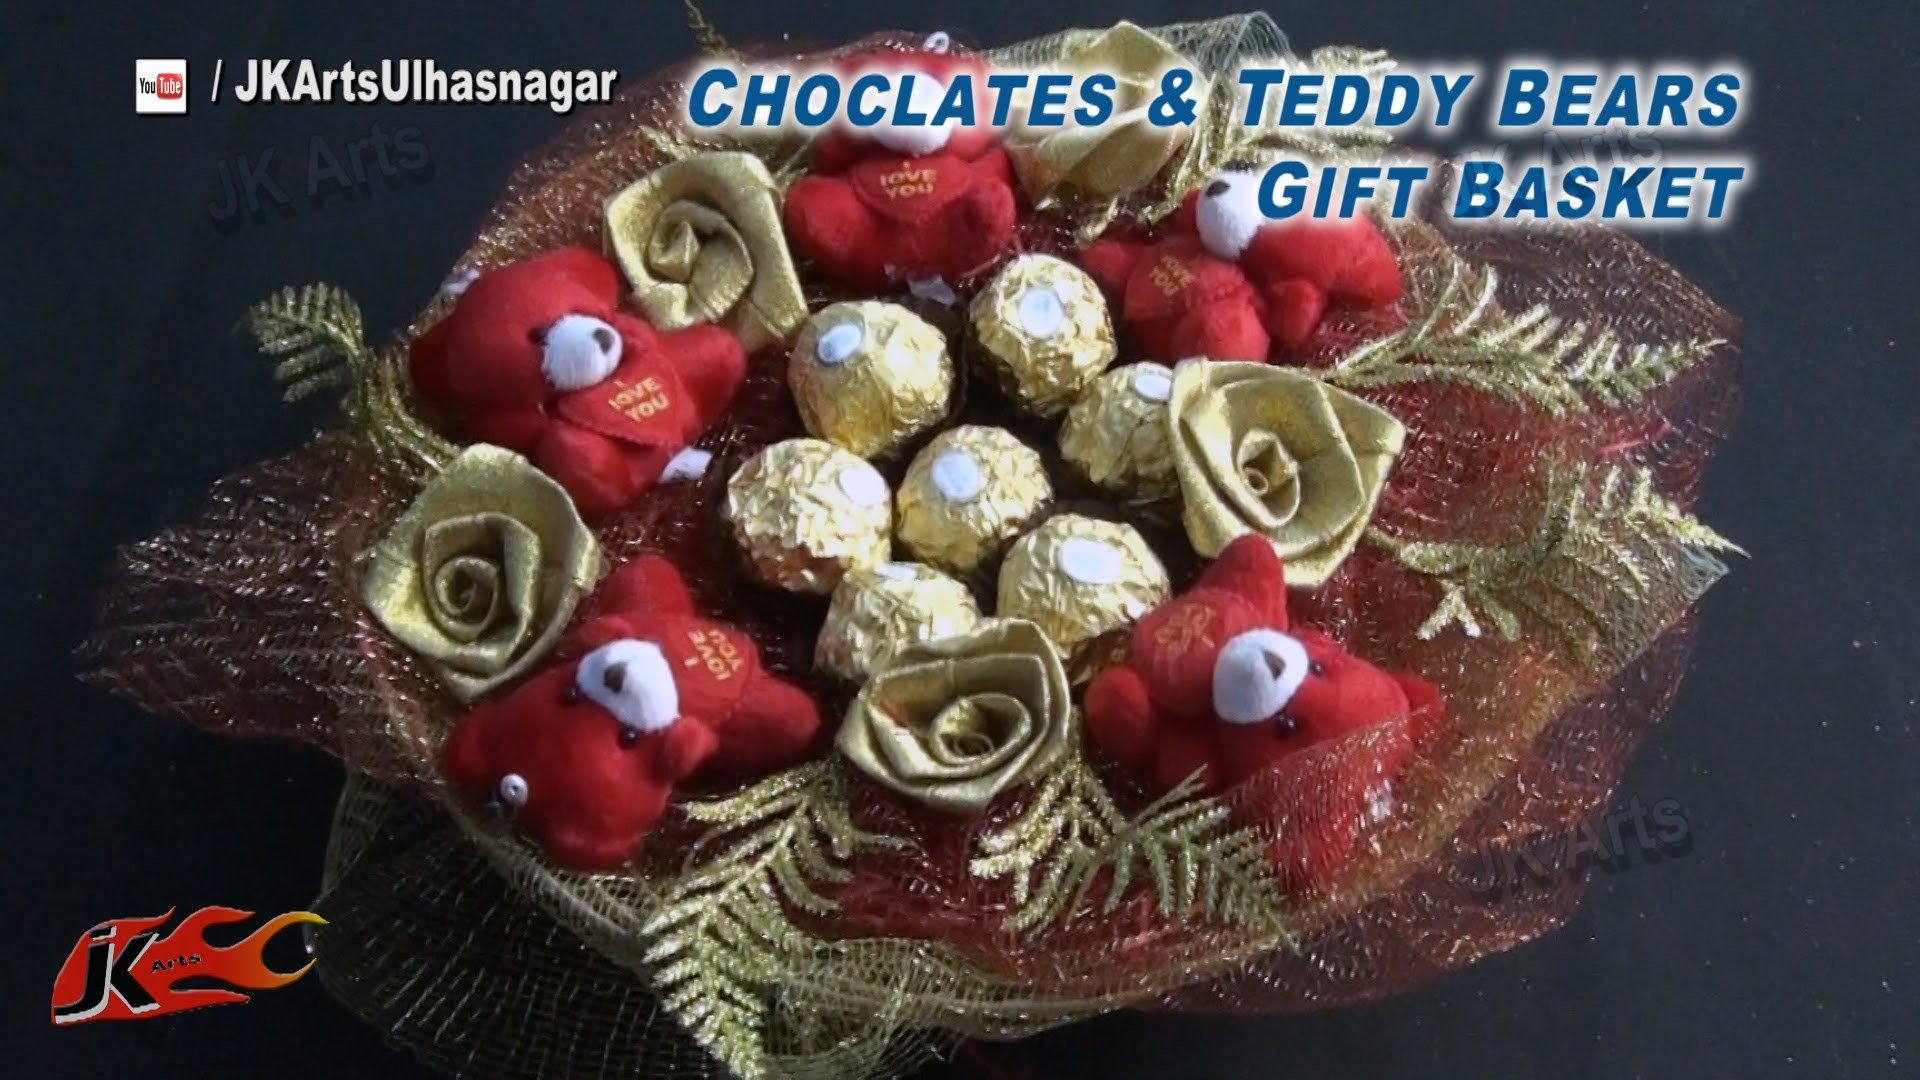 DIY Chocolates and teddy bear gift basket  | Valentine's Day Gift Idea | How to make  |JK Arts 836